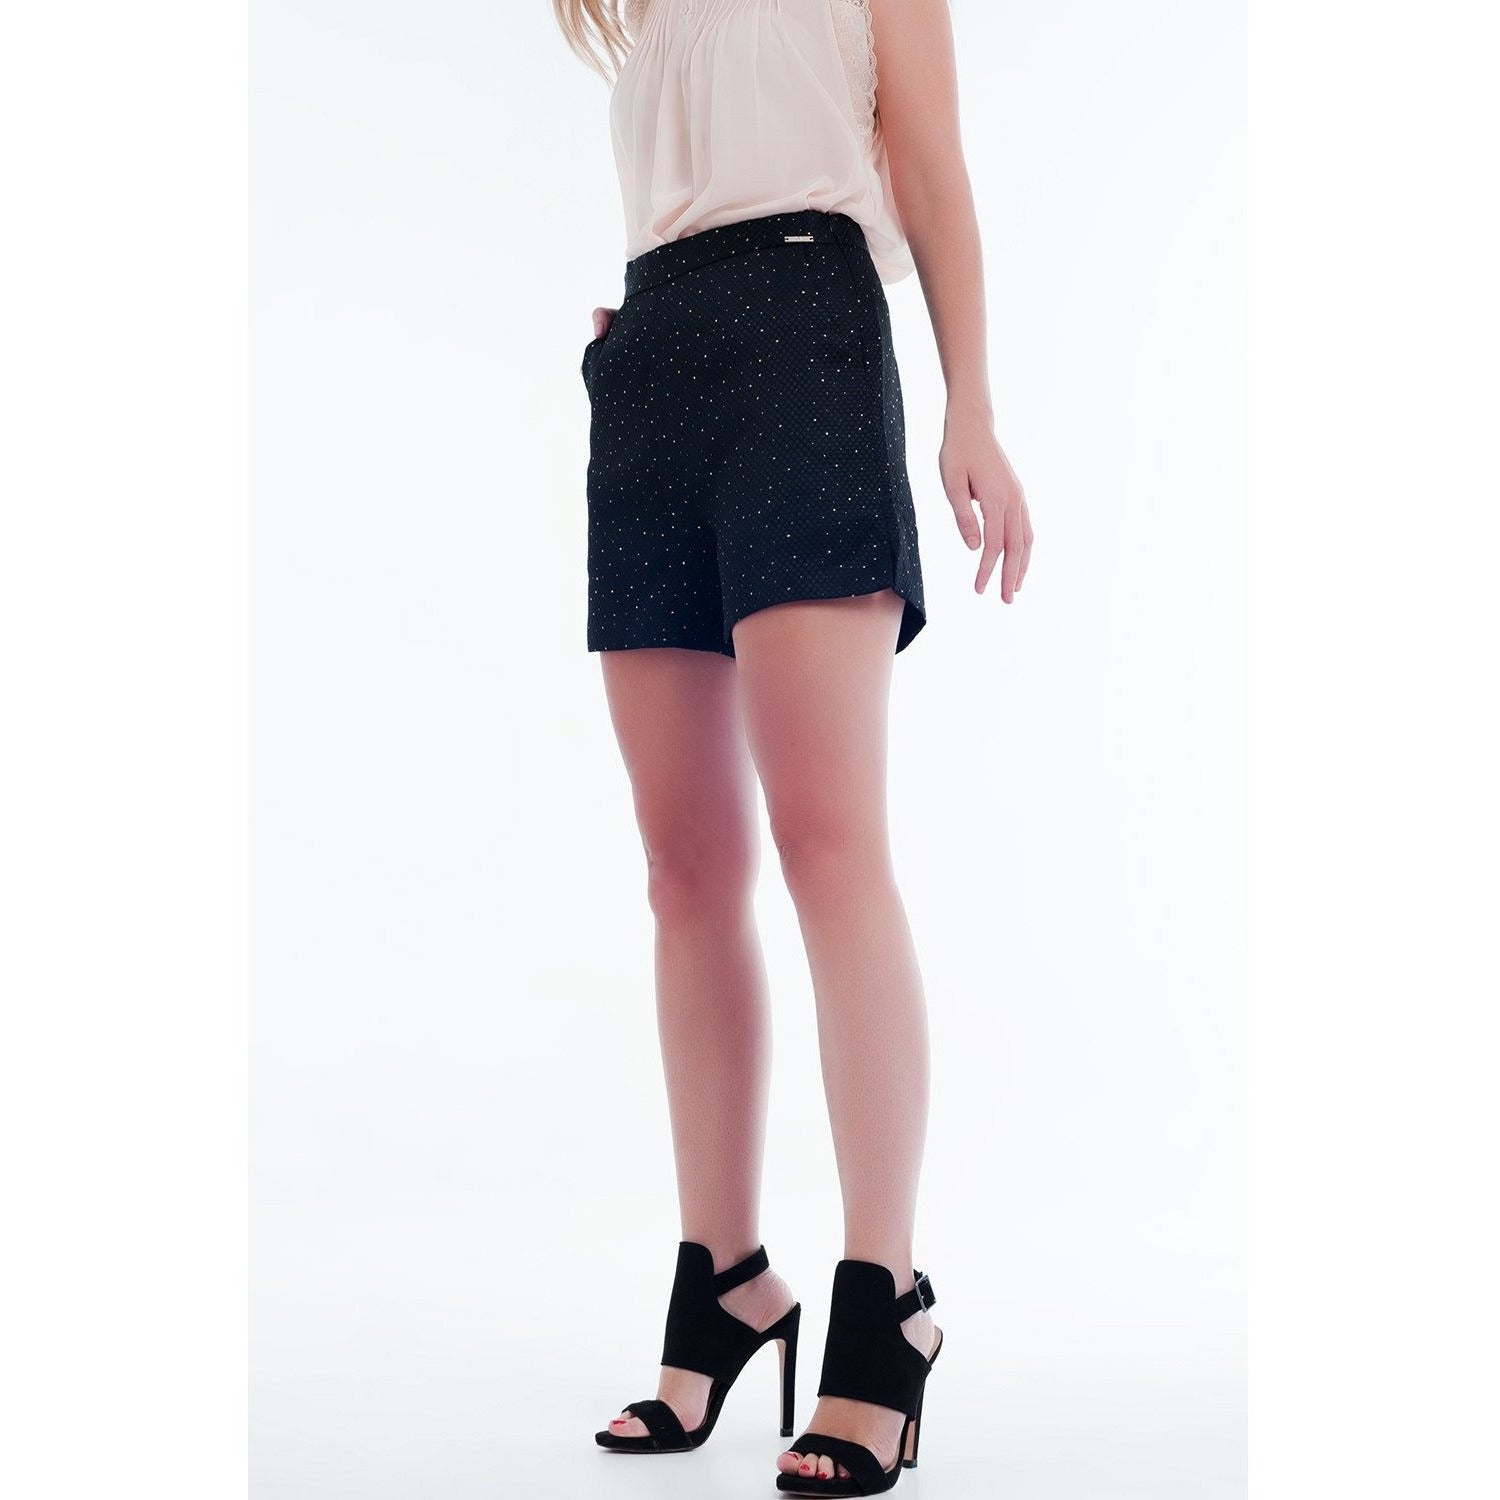 Embellished High Waist Short in Black and Gold - Miraposa